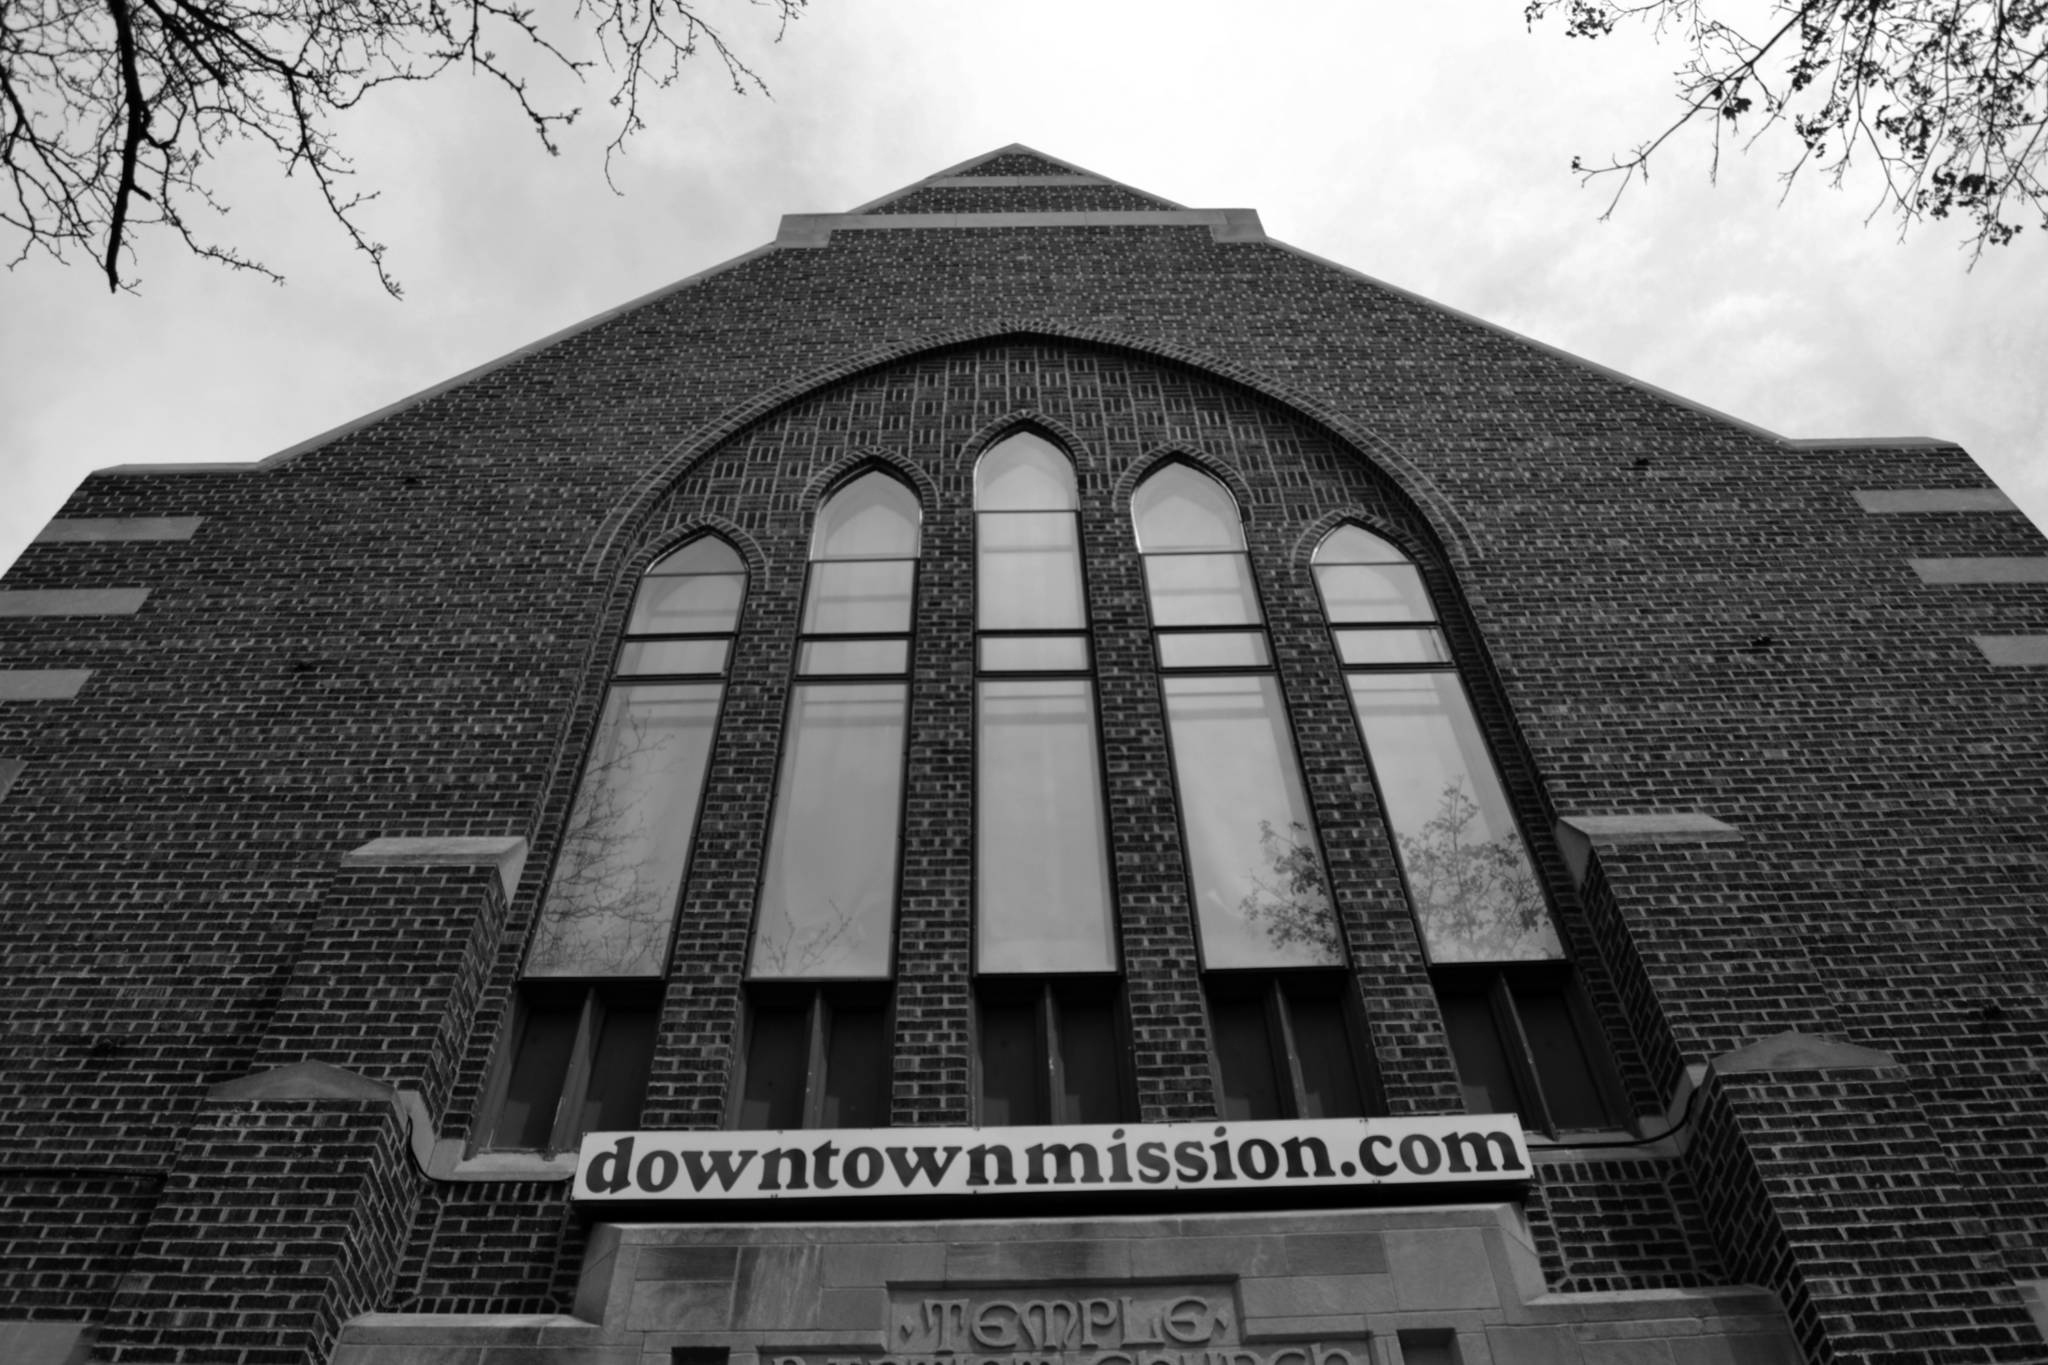 The front of the church of the downtown mission showing a banner displaying the website url.